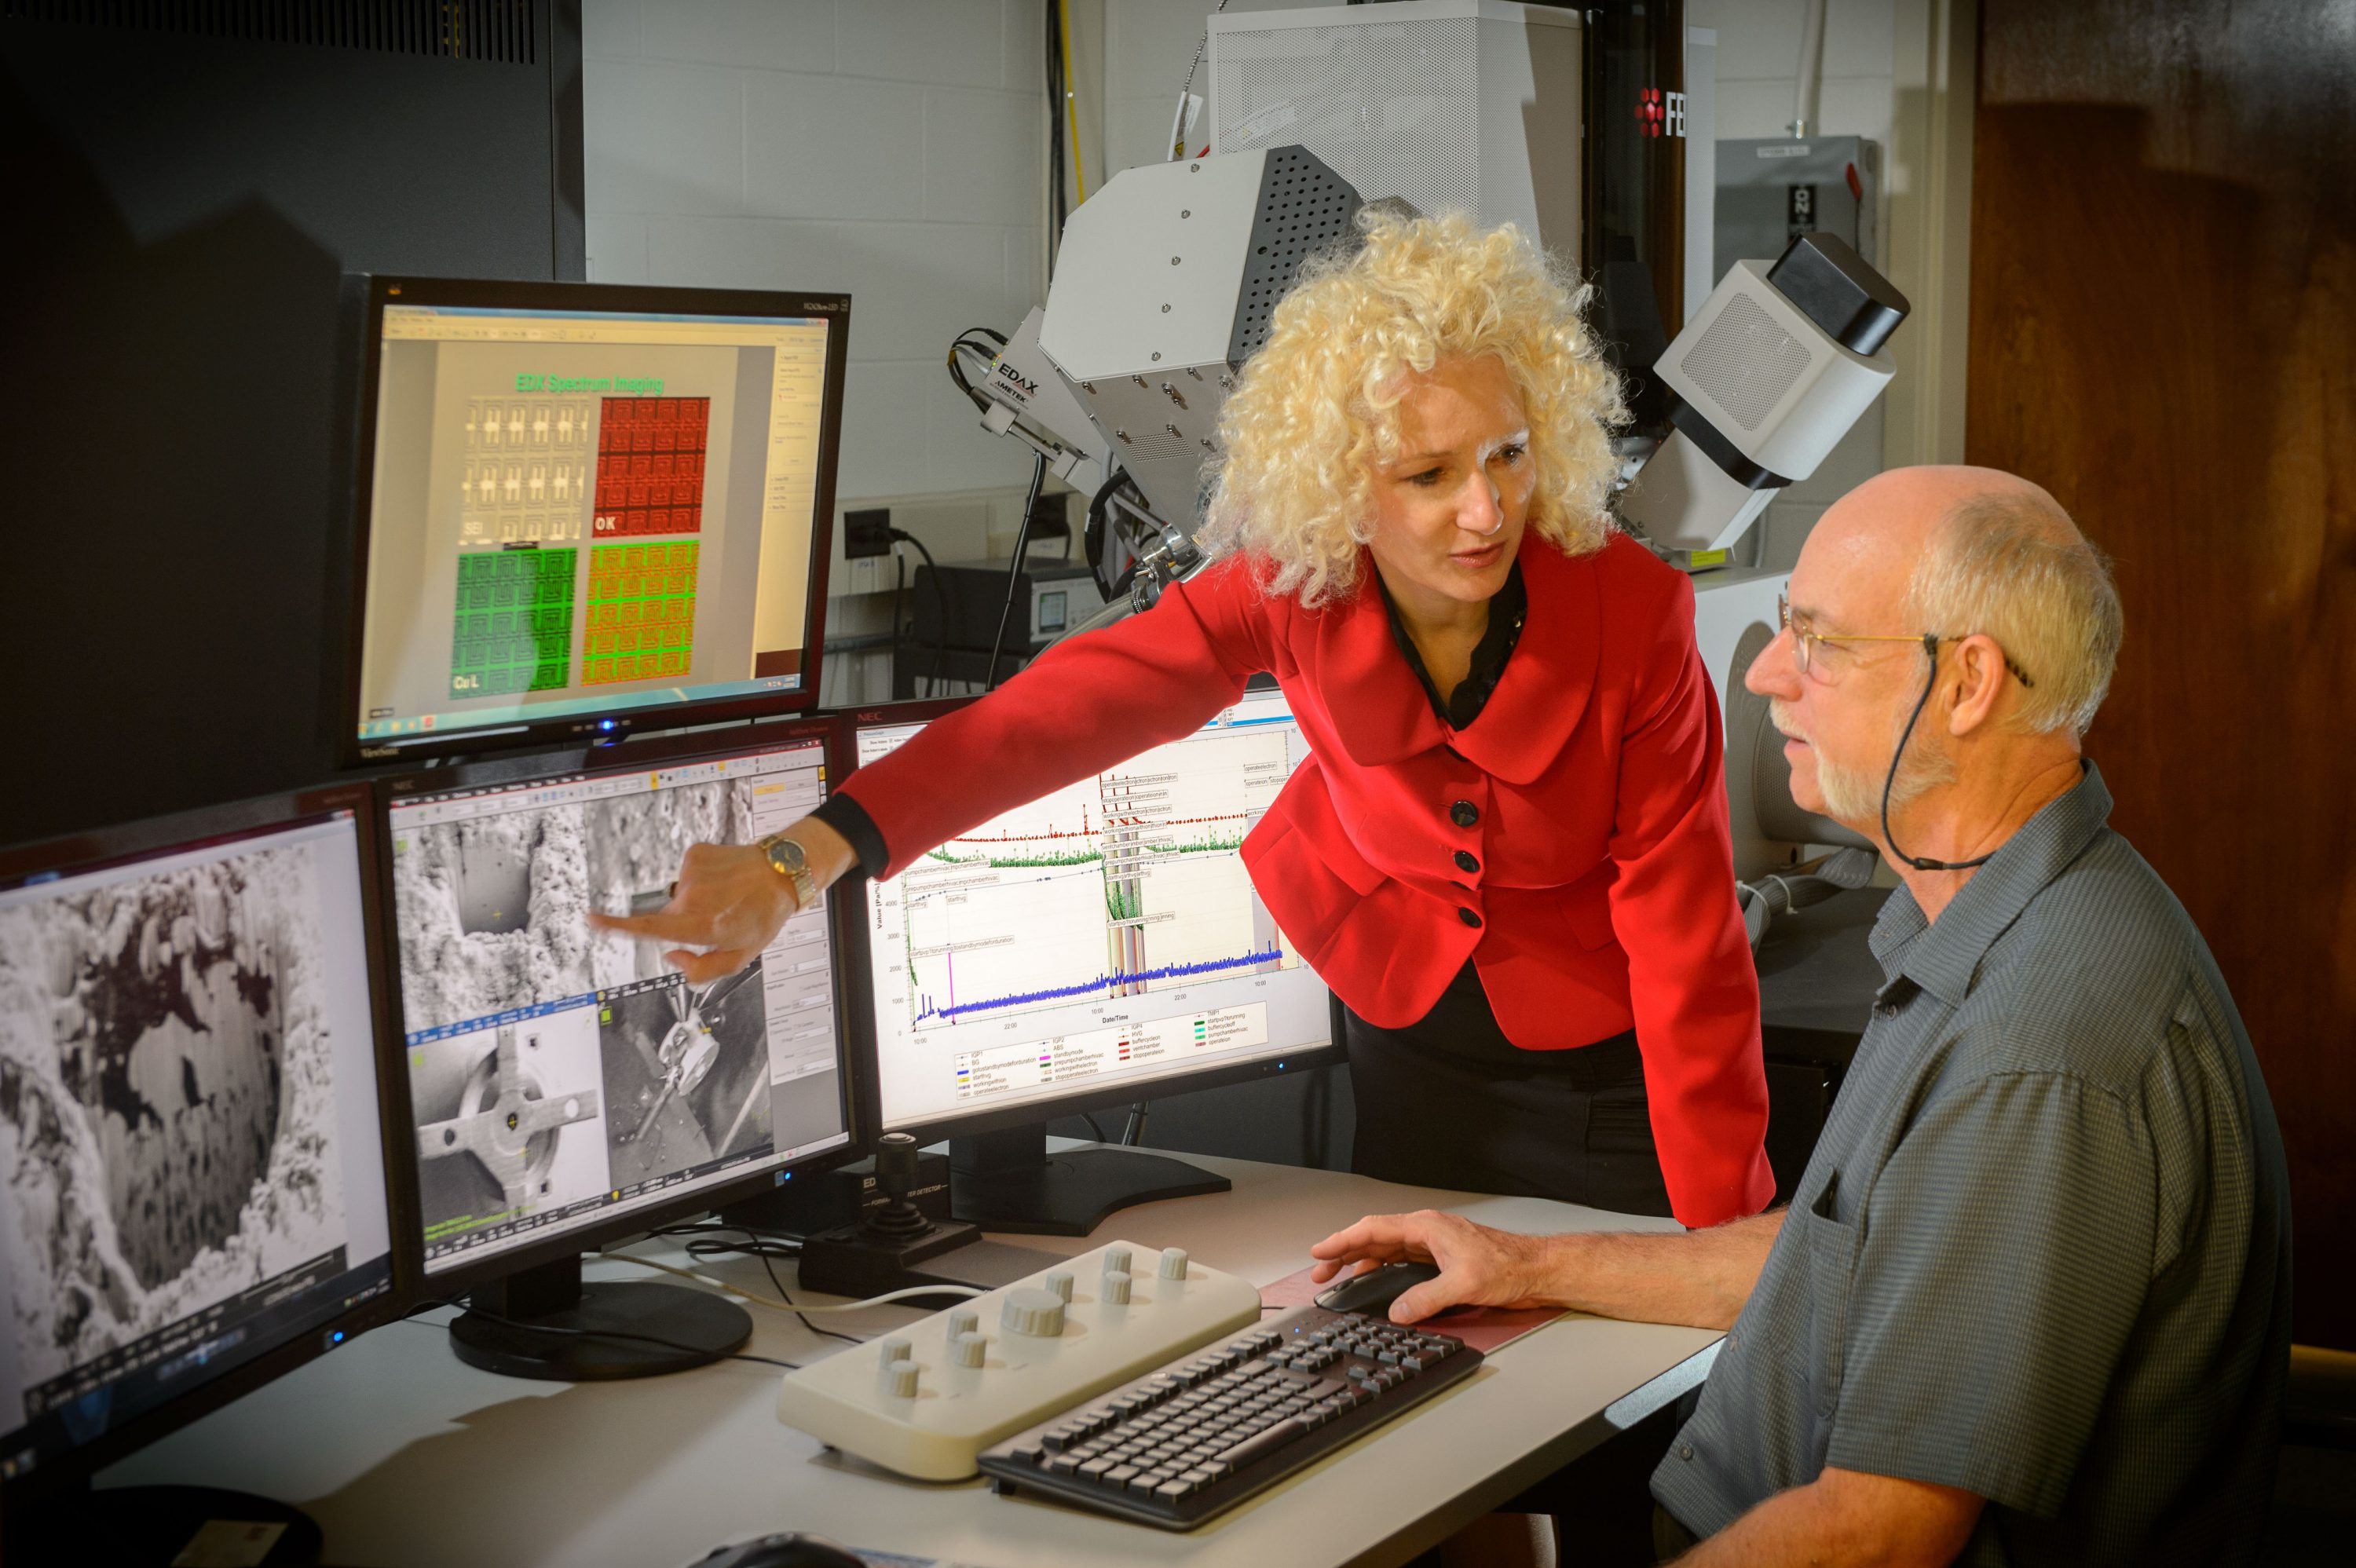 Radenka Maric, executive director of Tech Park, speaks with Roger Ristau, manager of the UConn-FEI Center for Advanced Microscopy and Materials Analysis. (Peter Morenus/UConn Photo)